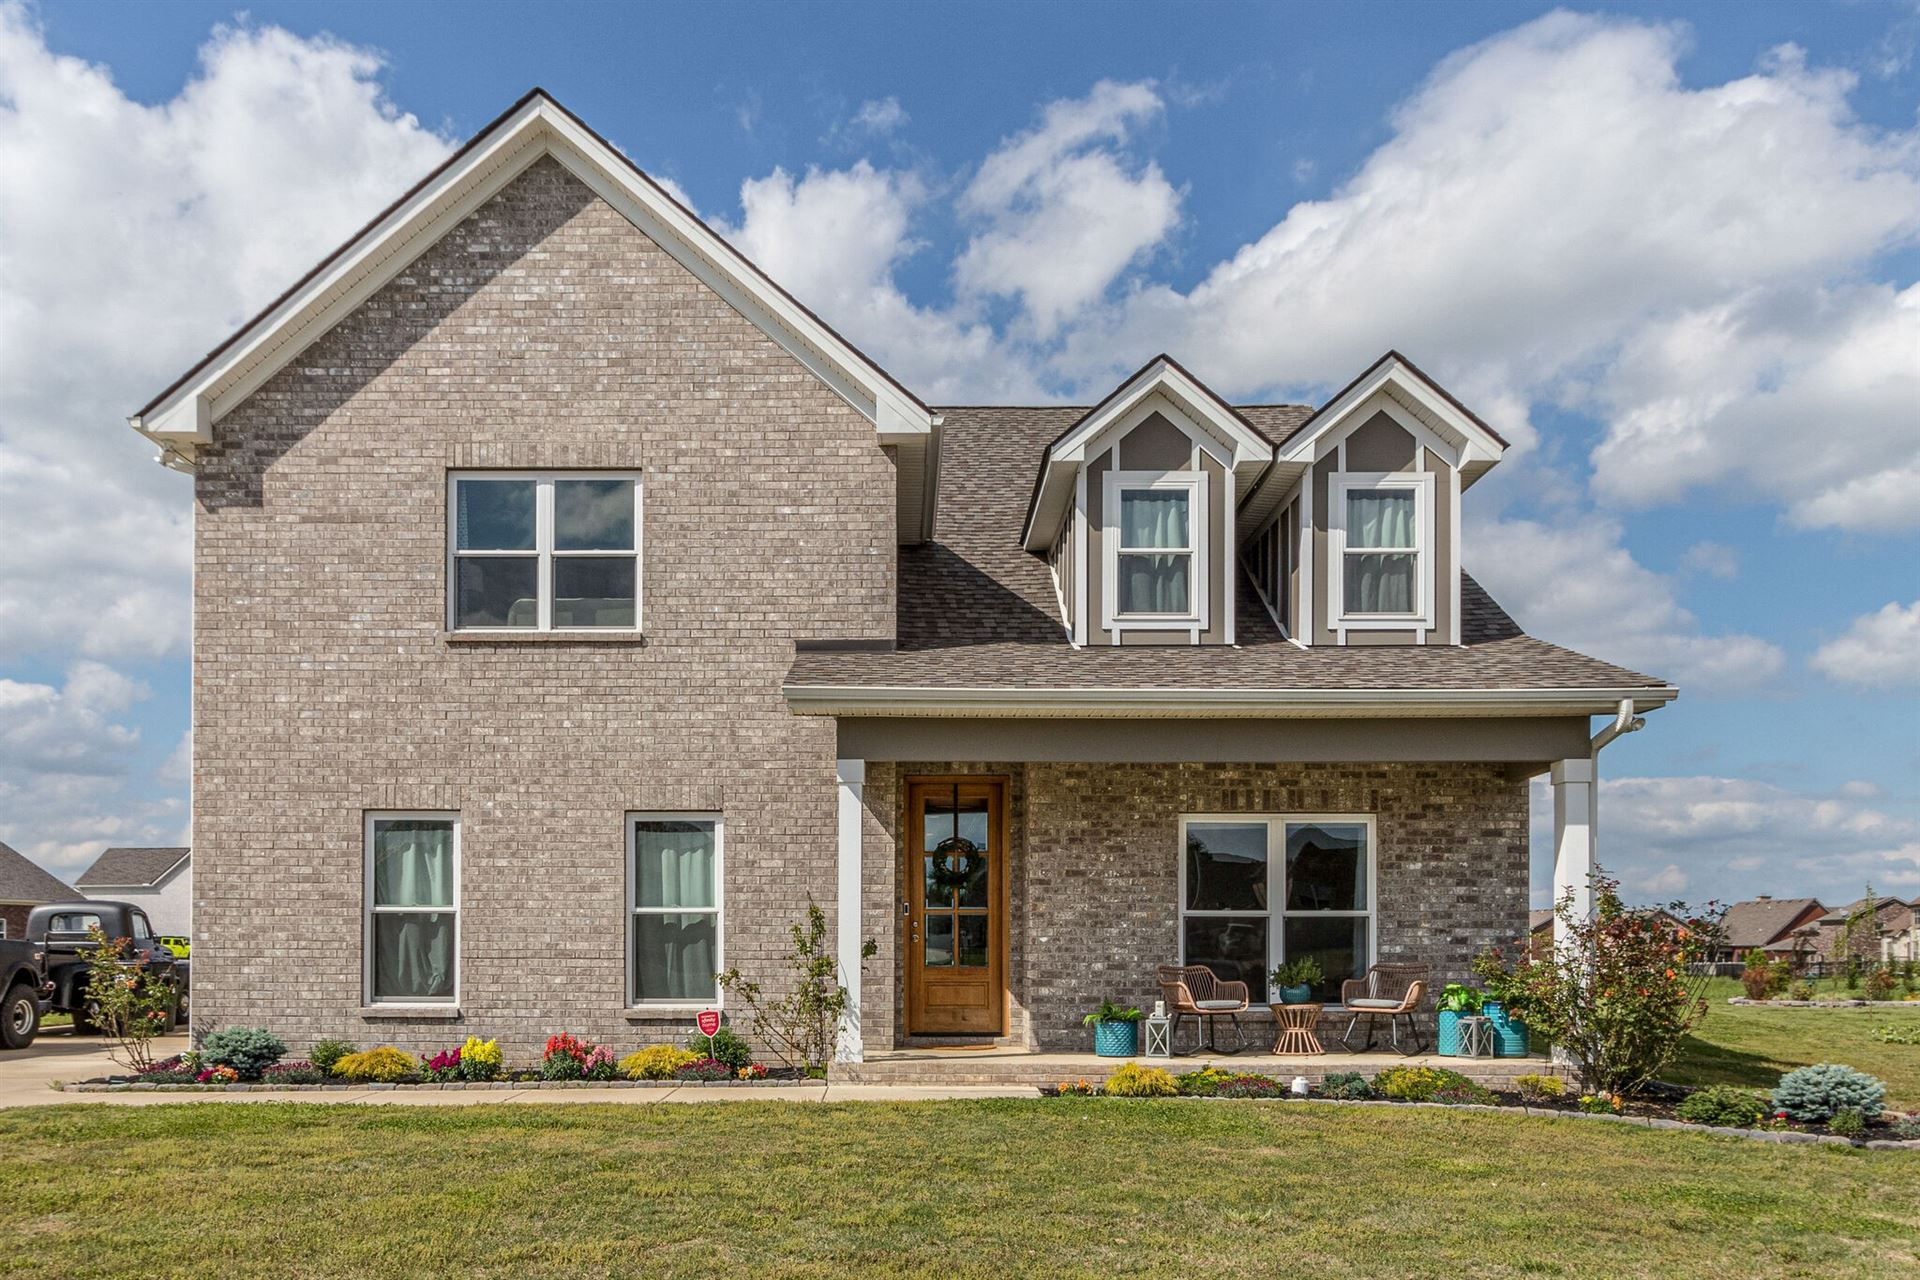 5014 Fort McHenry Ct, Murfreesboro, TN 37129 - MLS#: 2249893